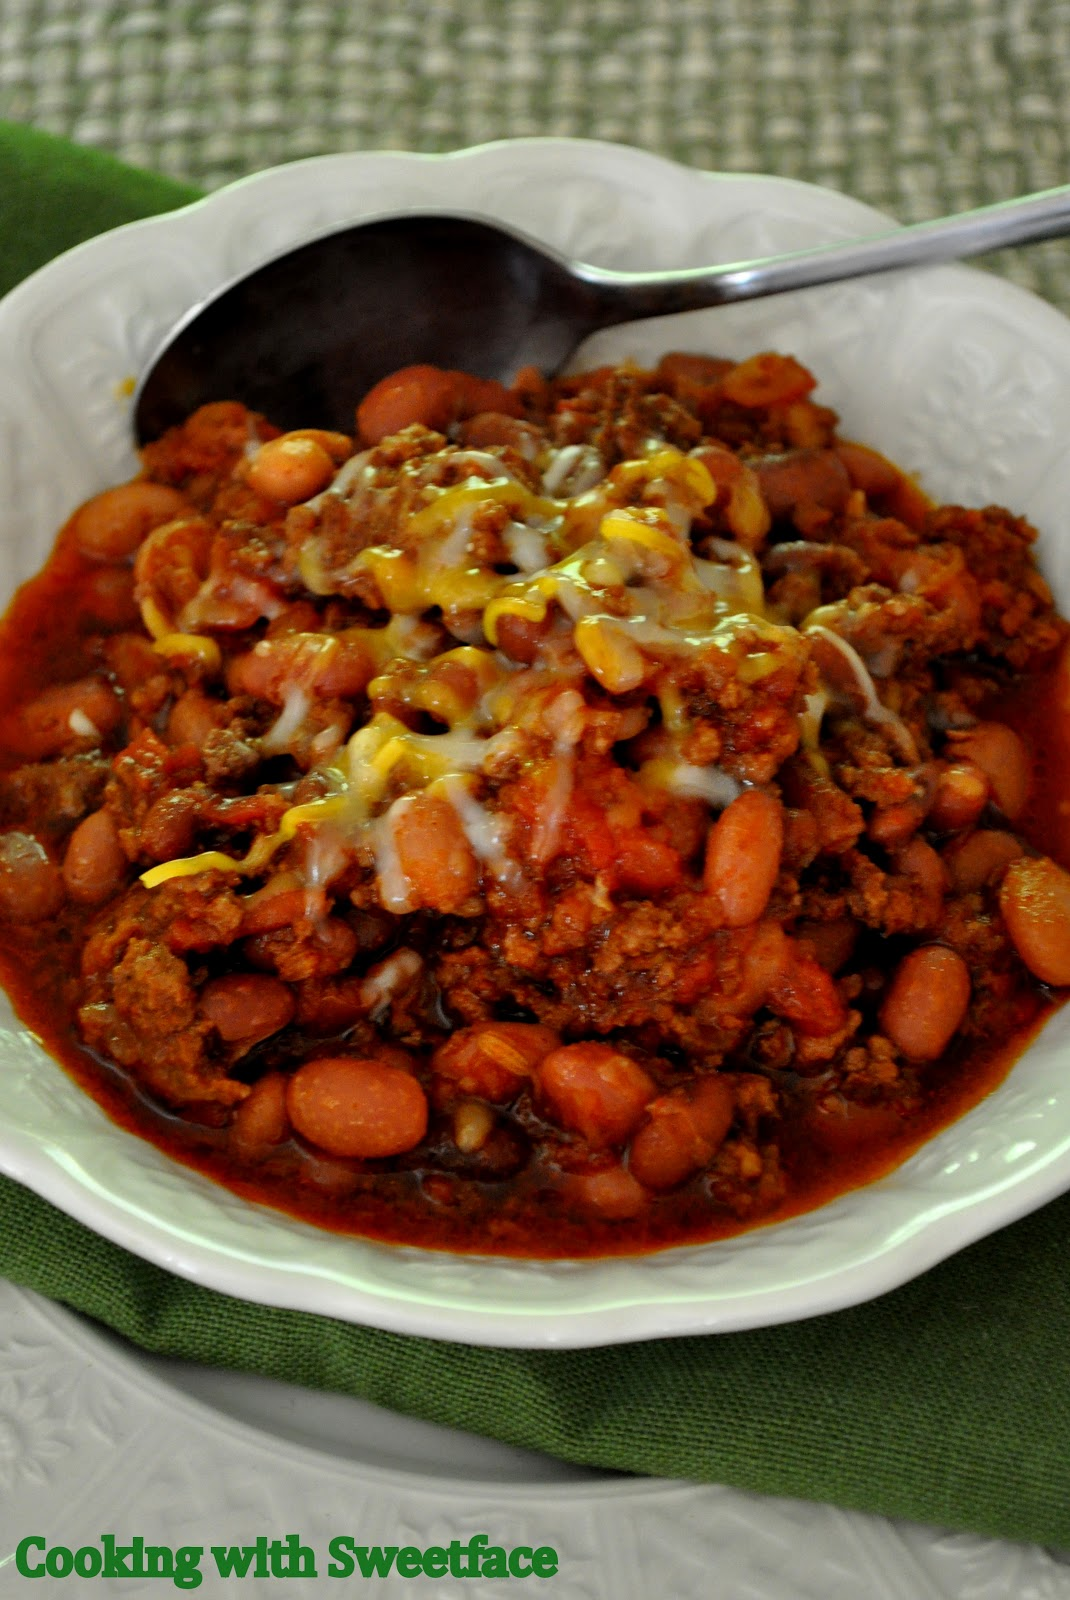 CookingwithSweetface: Pork and Beef Three Bean Chili